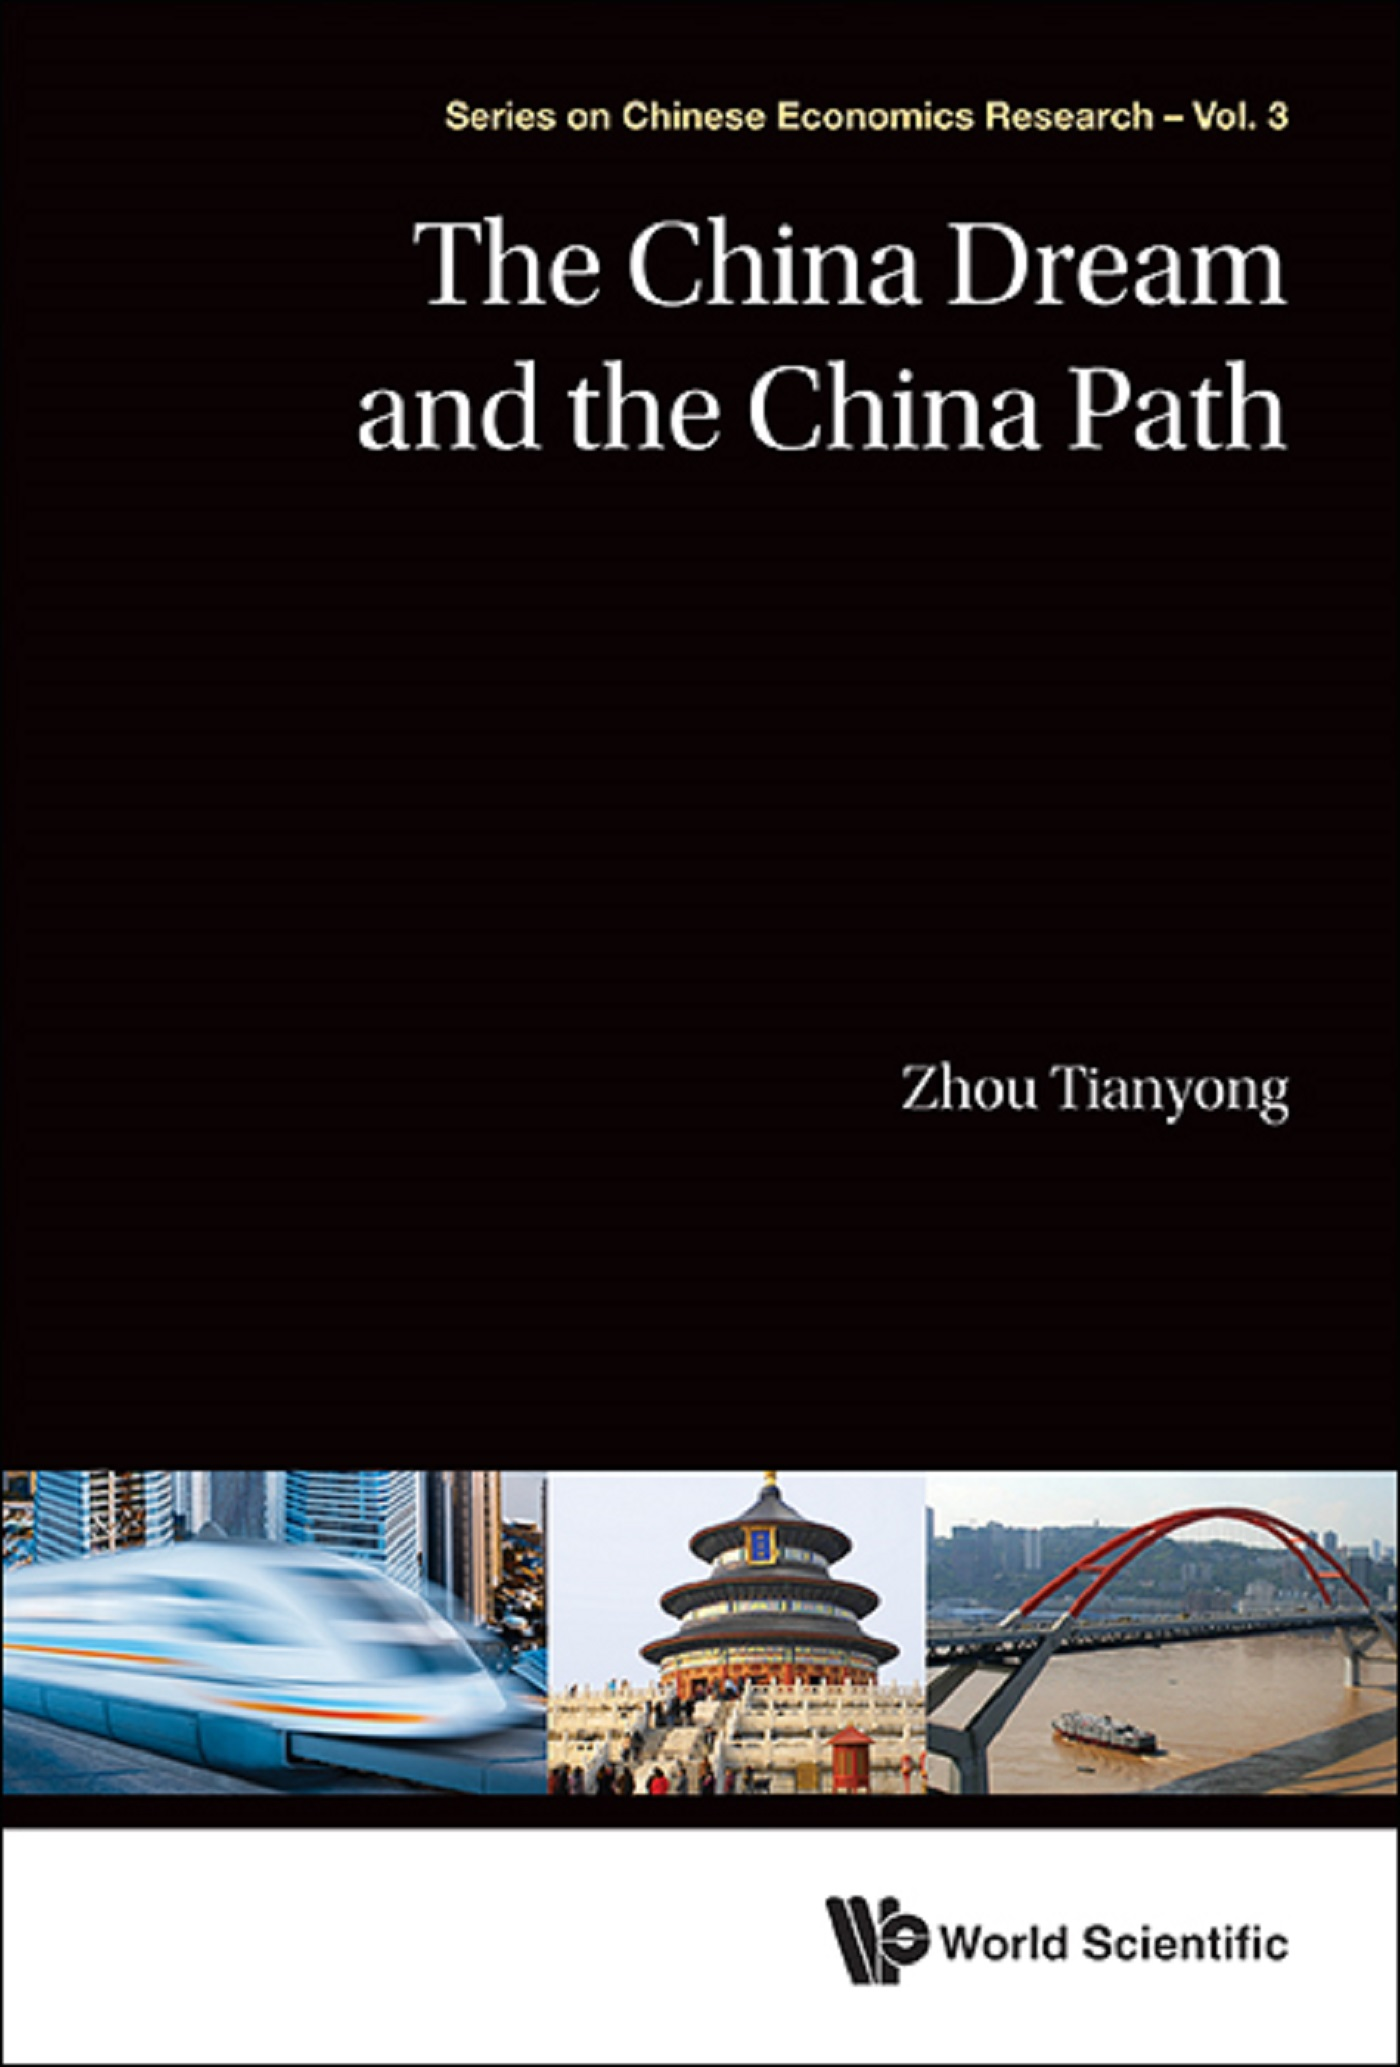 The China Dream and the China Path